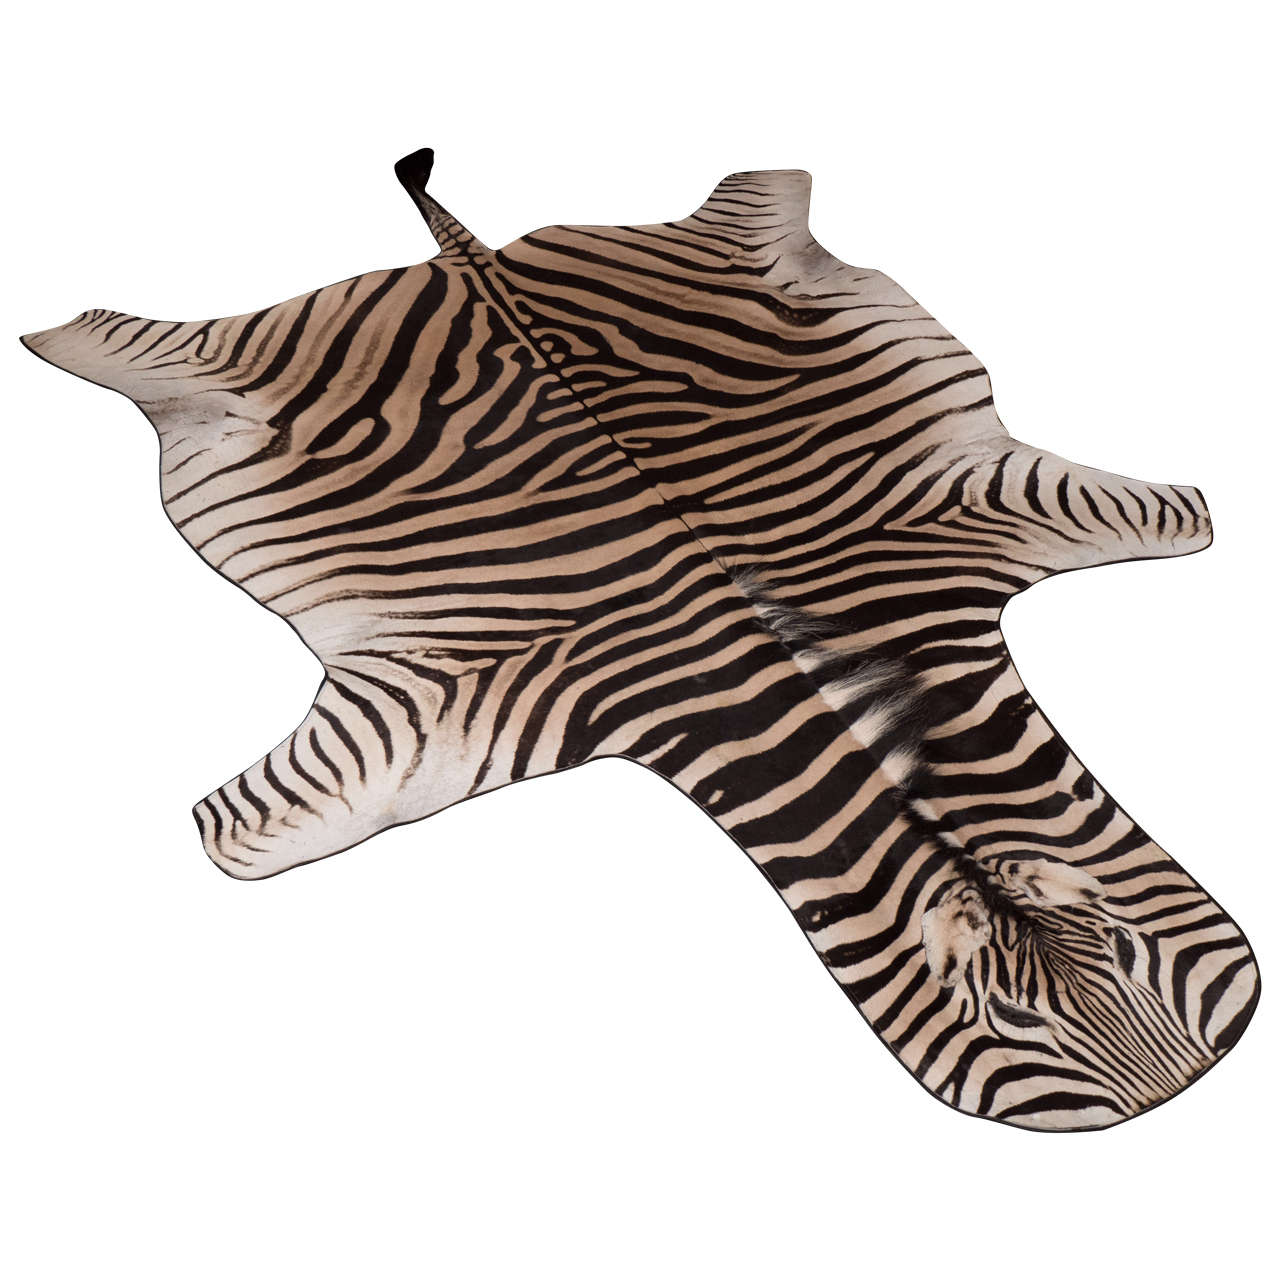 Zebra Rug with Black Felt Backing and Leather Piping